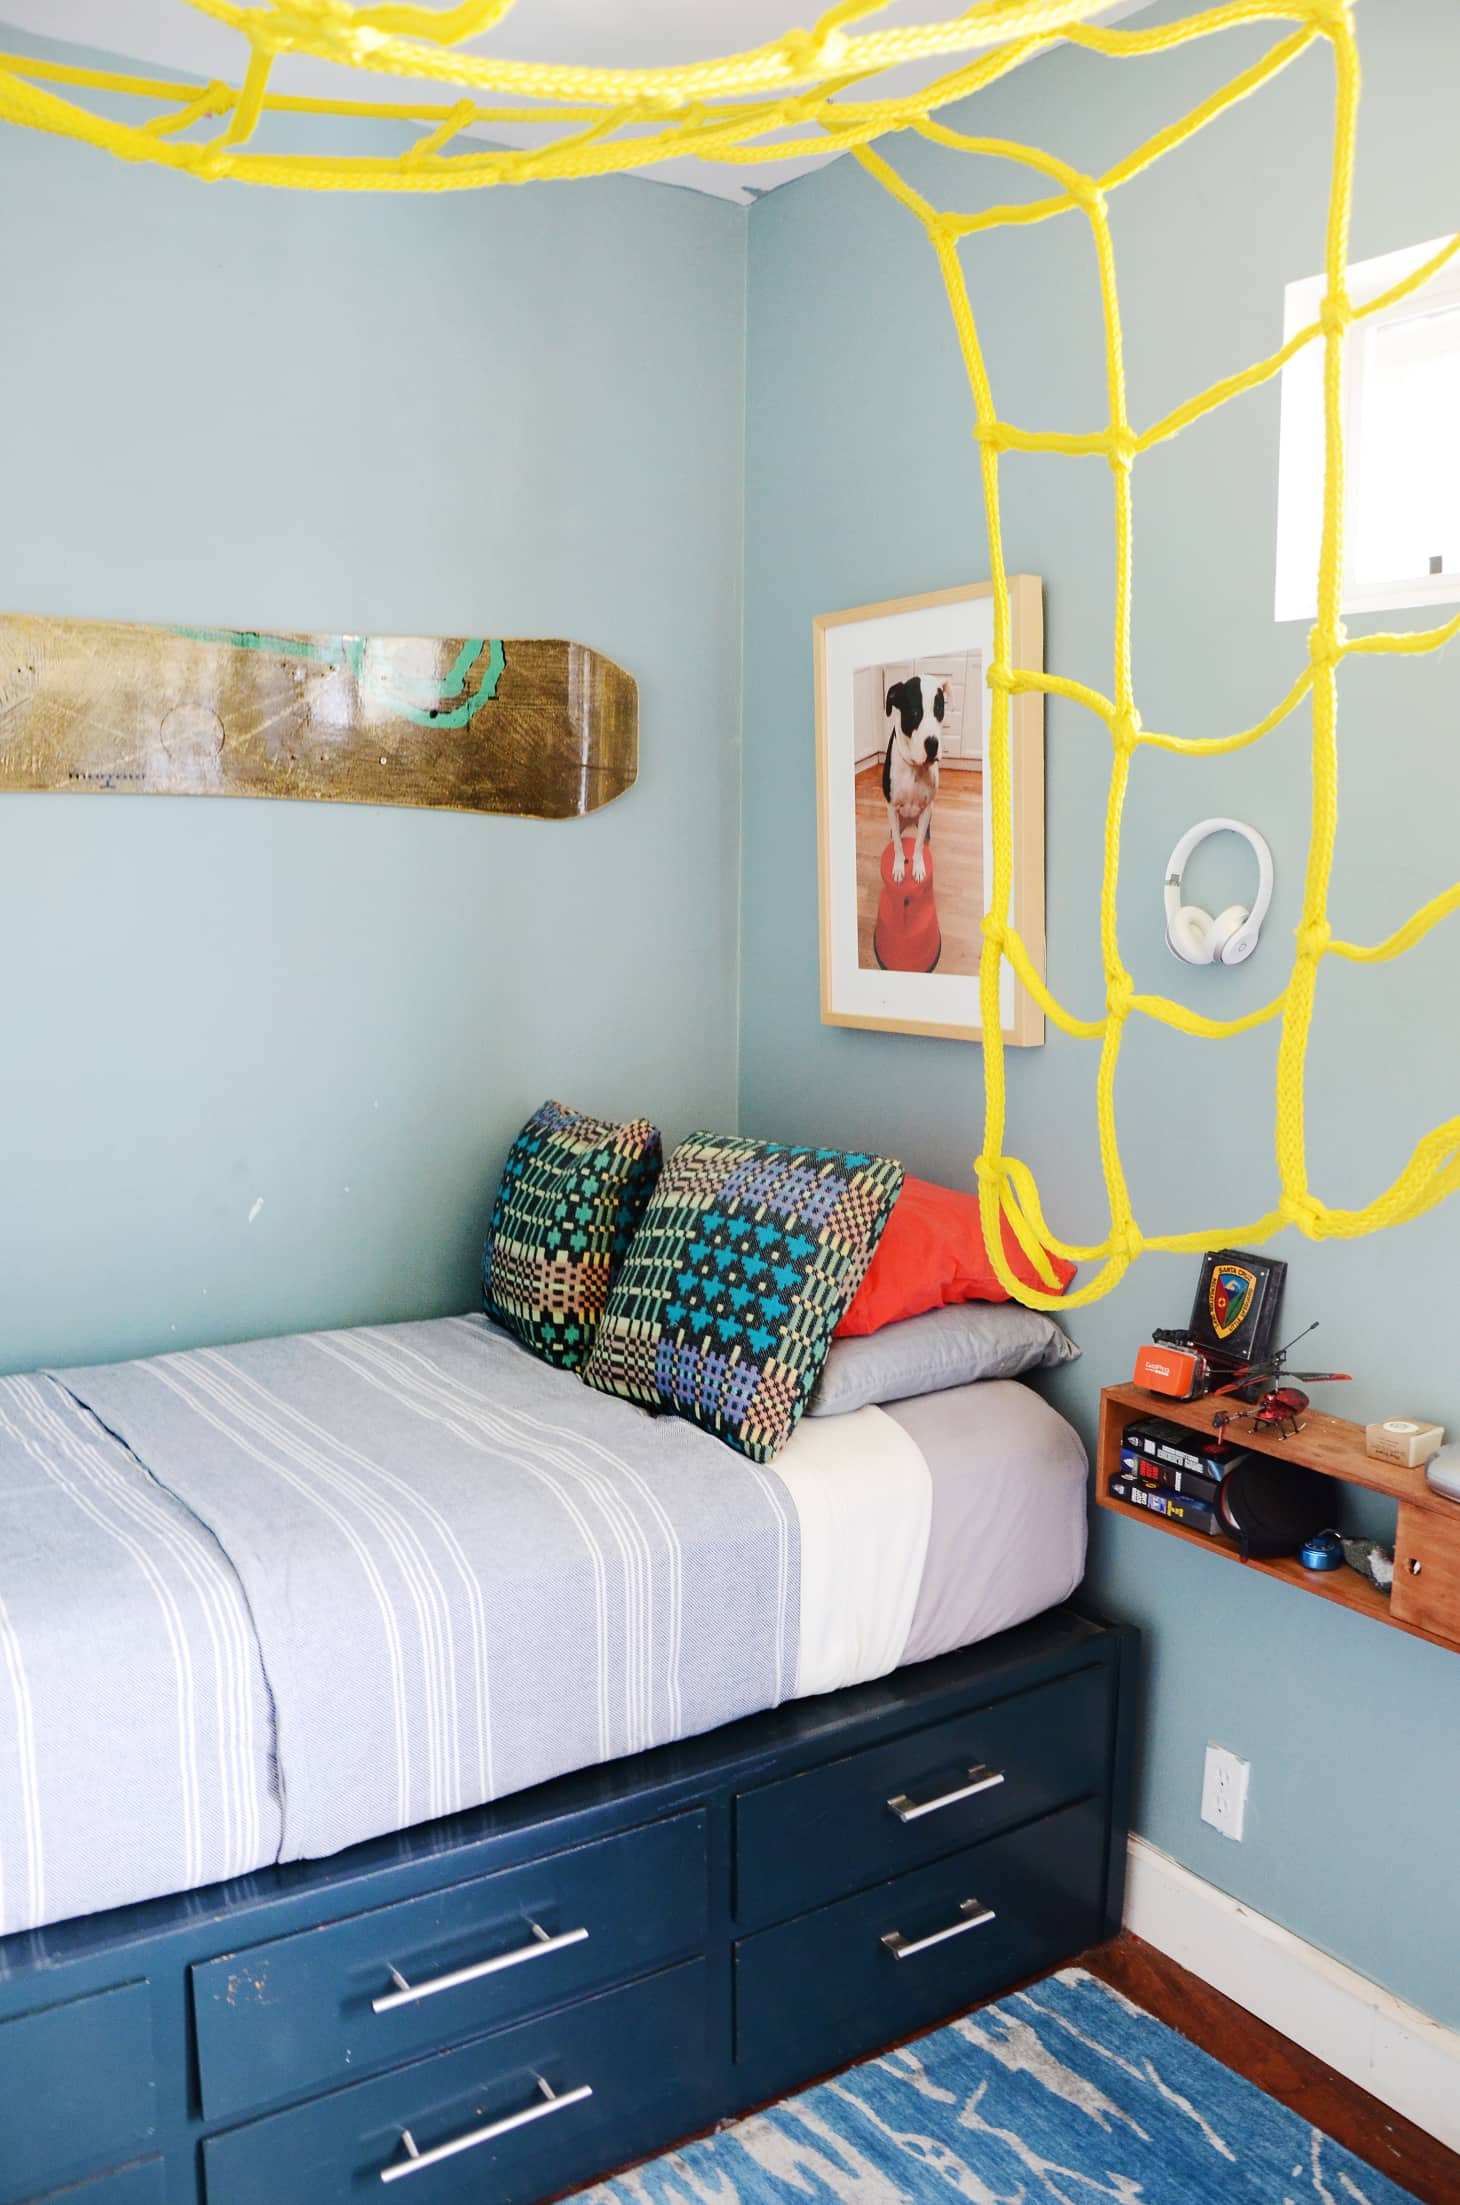 6 Diy Ways To Make A Platform Bed With Ikea Products Apartment Therapy